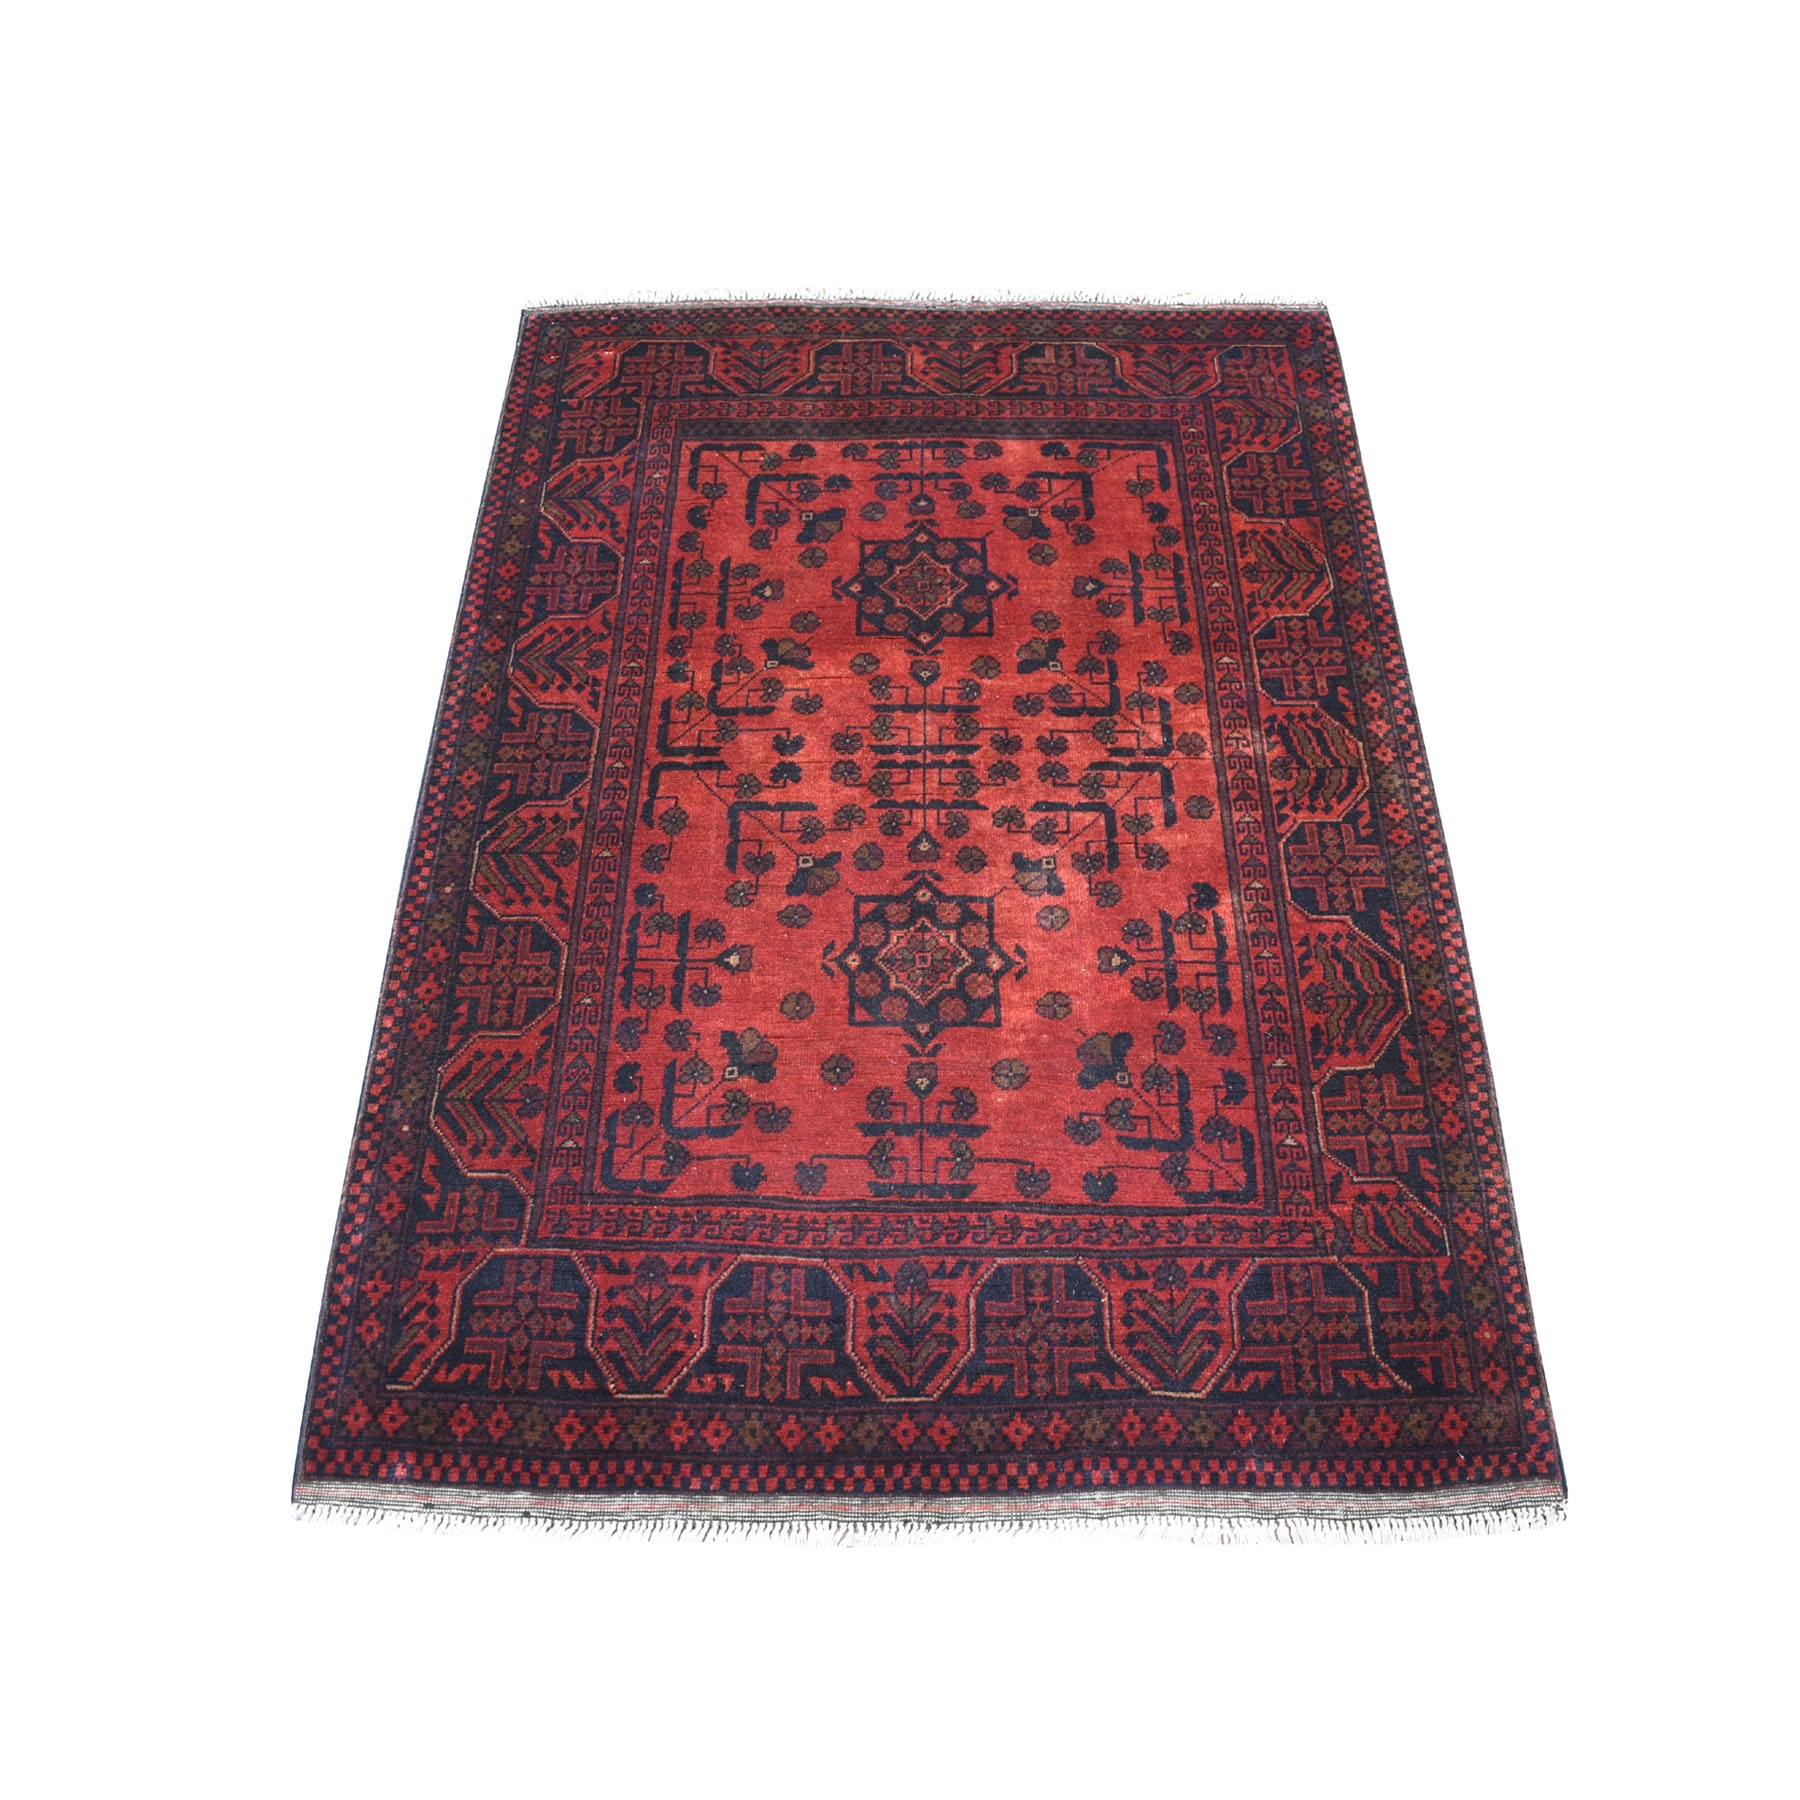 "3'6""x4'7"" Deep and Saturated Red Geometric Design Afghan Andkhoy Pure Wool Hand Woven Oriental Rug"